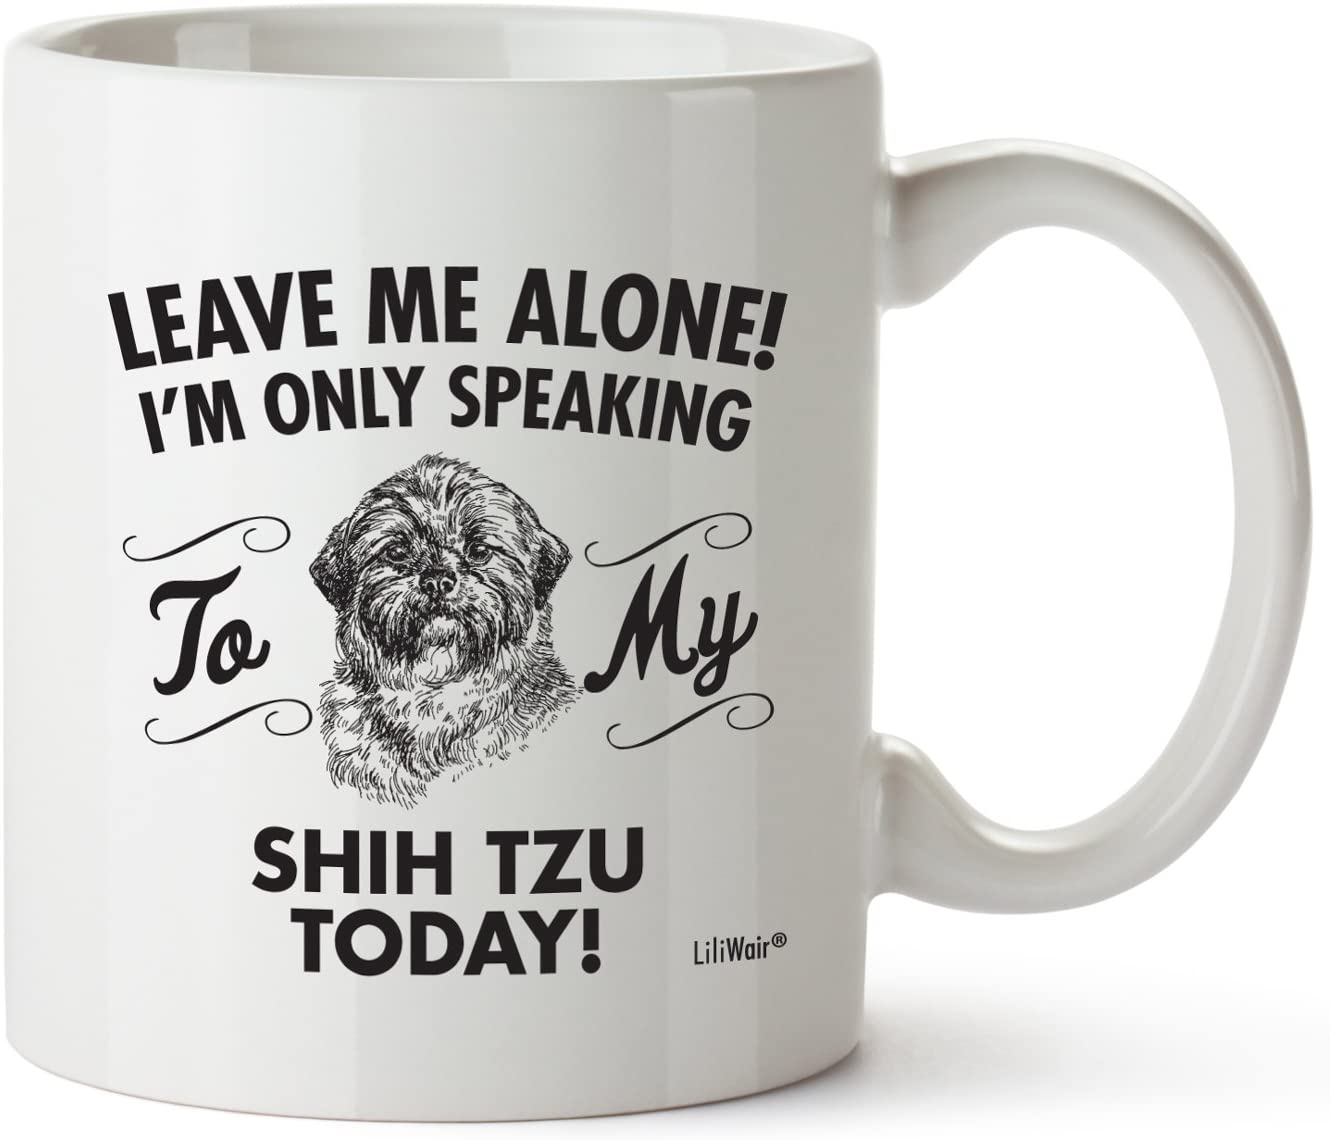 Shih Tzu Mom Gifts Mug For Women Men Dad Decor Lover Decorations Stuff I Love Shih Tzus Coffee Merchandise Accessories Talking Art Apparel Funny Birthday Gift Home Supplies Product Dog Coffee Cup Mugs